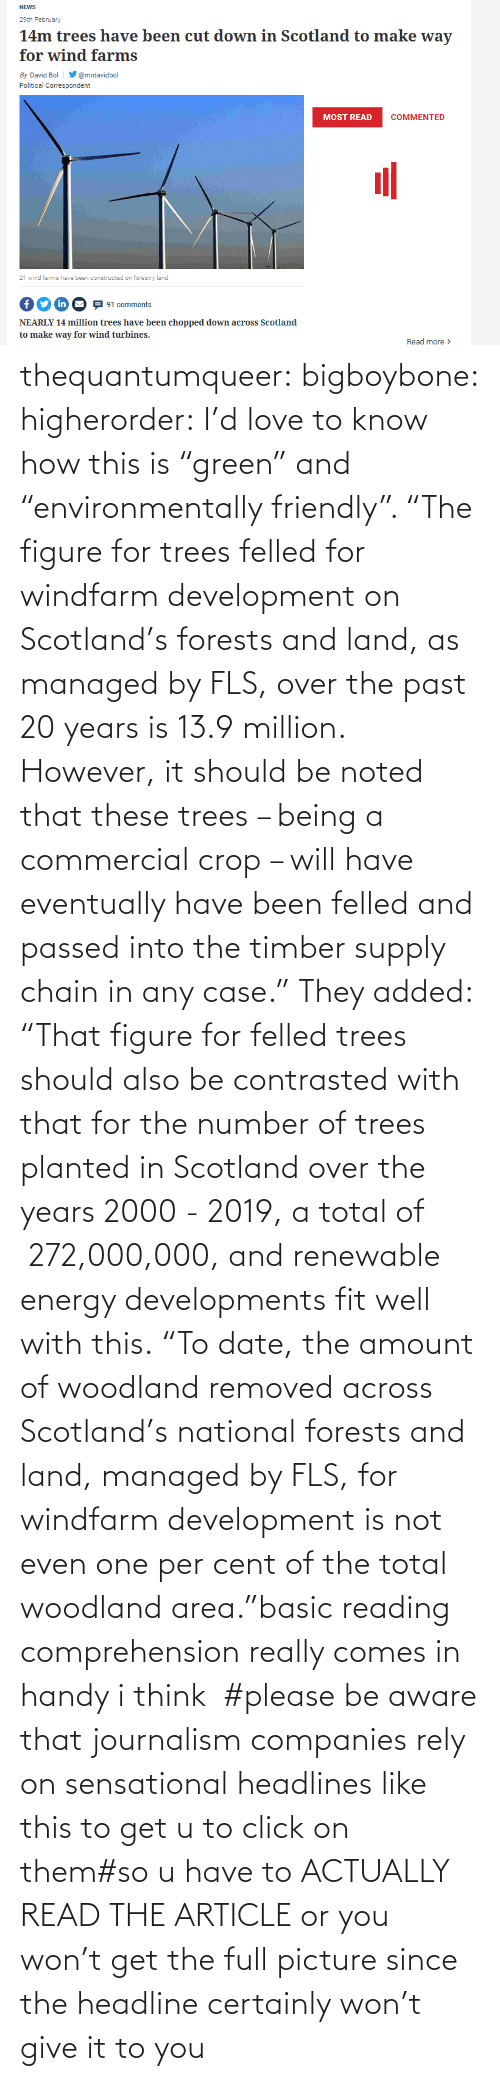 "total: thequantumqueer: bigboybone:  higherorder: I'd love to know how this is ""green"" and ""environmentally friendly"".  ""The figure for trees felled for windfarm development on Scotland's forests and land, as managed by FLS, over the past 20 years is 13.9 million. However, it should be noted that these trees – being a commercial crop – will have eventually have been felled and passed into the timber supply chain in any case."" They added: ""That figure for felled trees should also be contrasted with that for the number of trees planted in Scotland over the years 2000 - 2019, a total of  272,000,000, and renewable energy developments fit well with this. ""To date, the amount of woodland removed across Scotland's national forests and land, managed by FLS, for windfarm development is not even one per cent of the total woodland area.""basic reading comprehension really comes in handy i think   #please be aware that journalism companies rely on sensational headlines like this to get u to click on them#so u have to ACTUALLY READ THE ARTICLE or you won't get the full picture since the headline certainly won't give it to you"